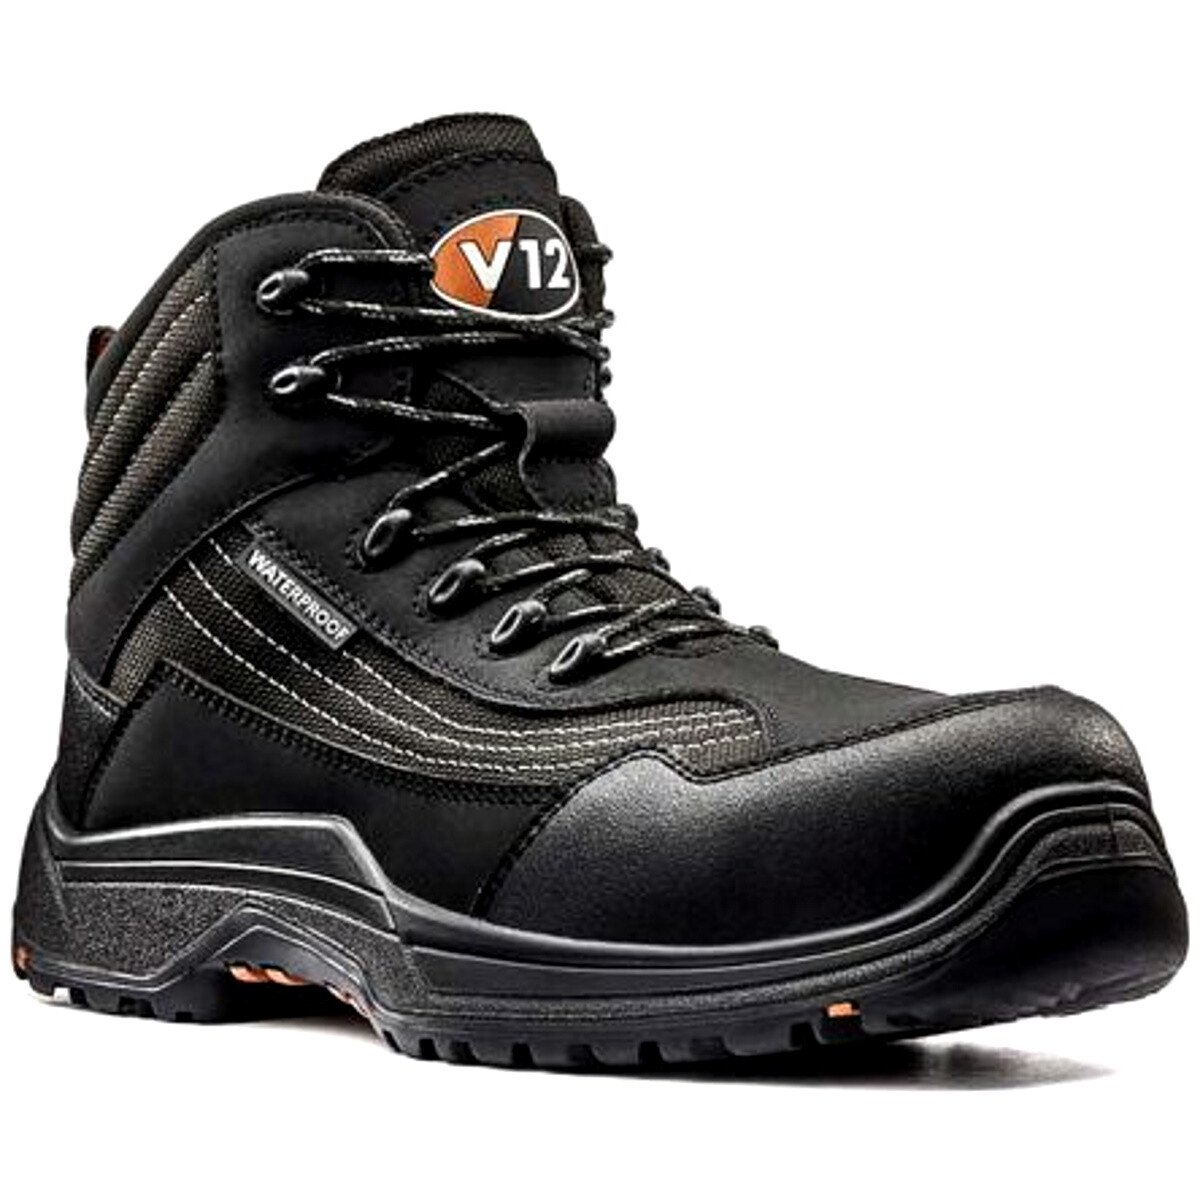 V12 Footwear Caiman V1501.01 Black Metal Free Safety Boot S3 HRO SRC